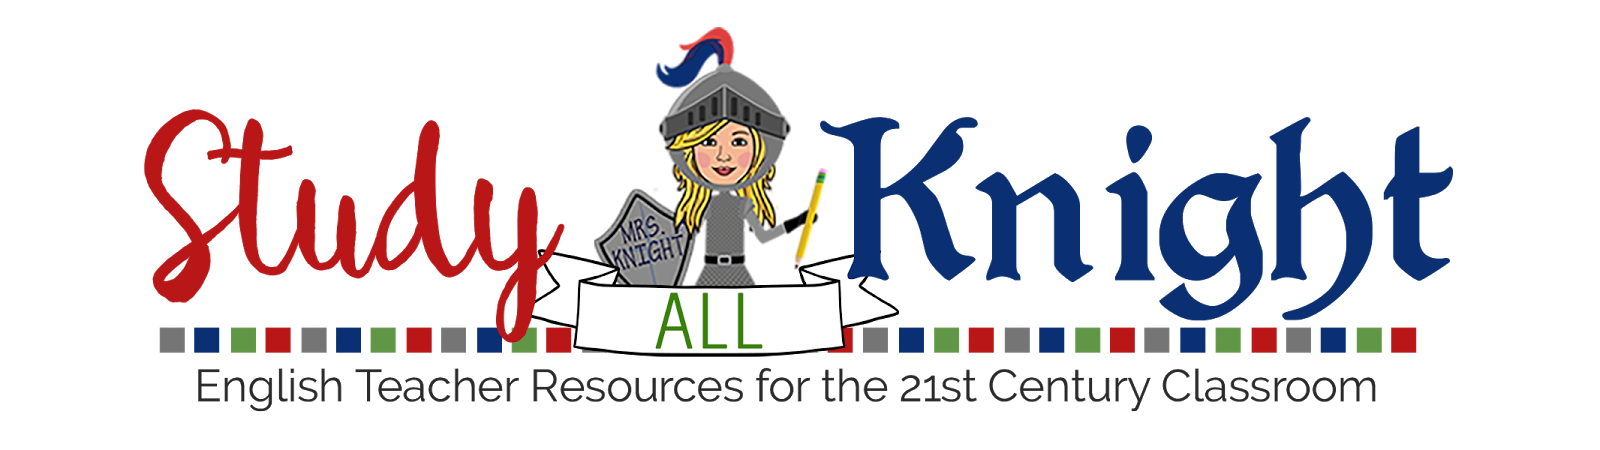 Study All Knight English Teacher Resources